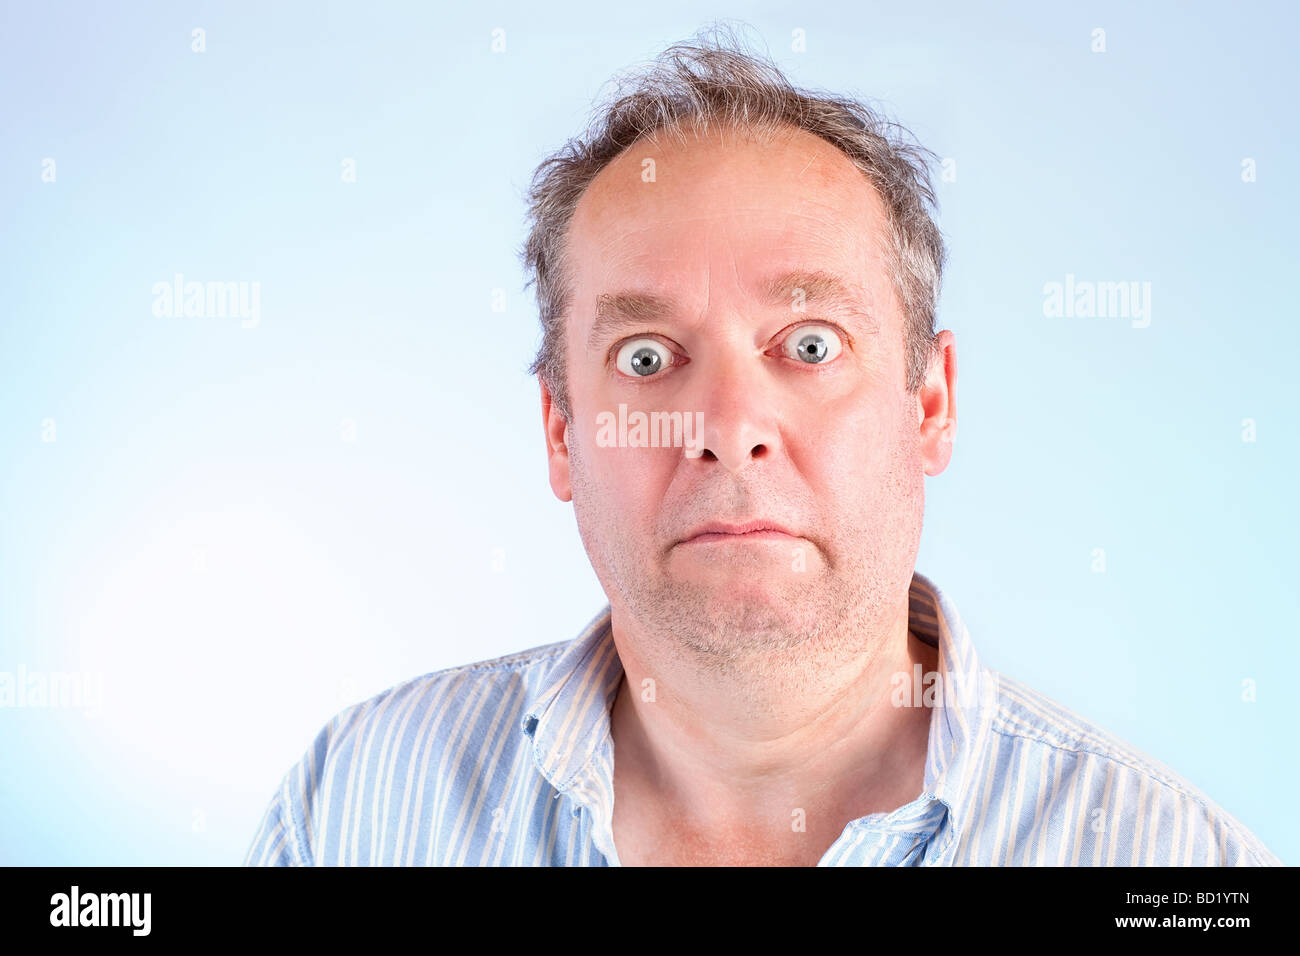 A man appear to be stunned about something - Stock Image